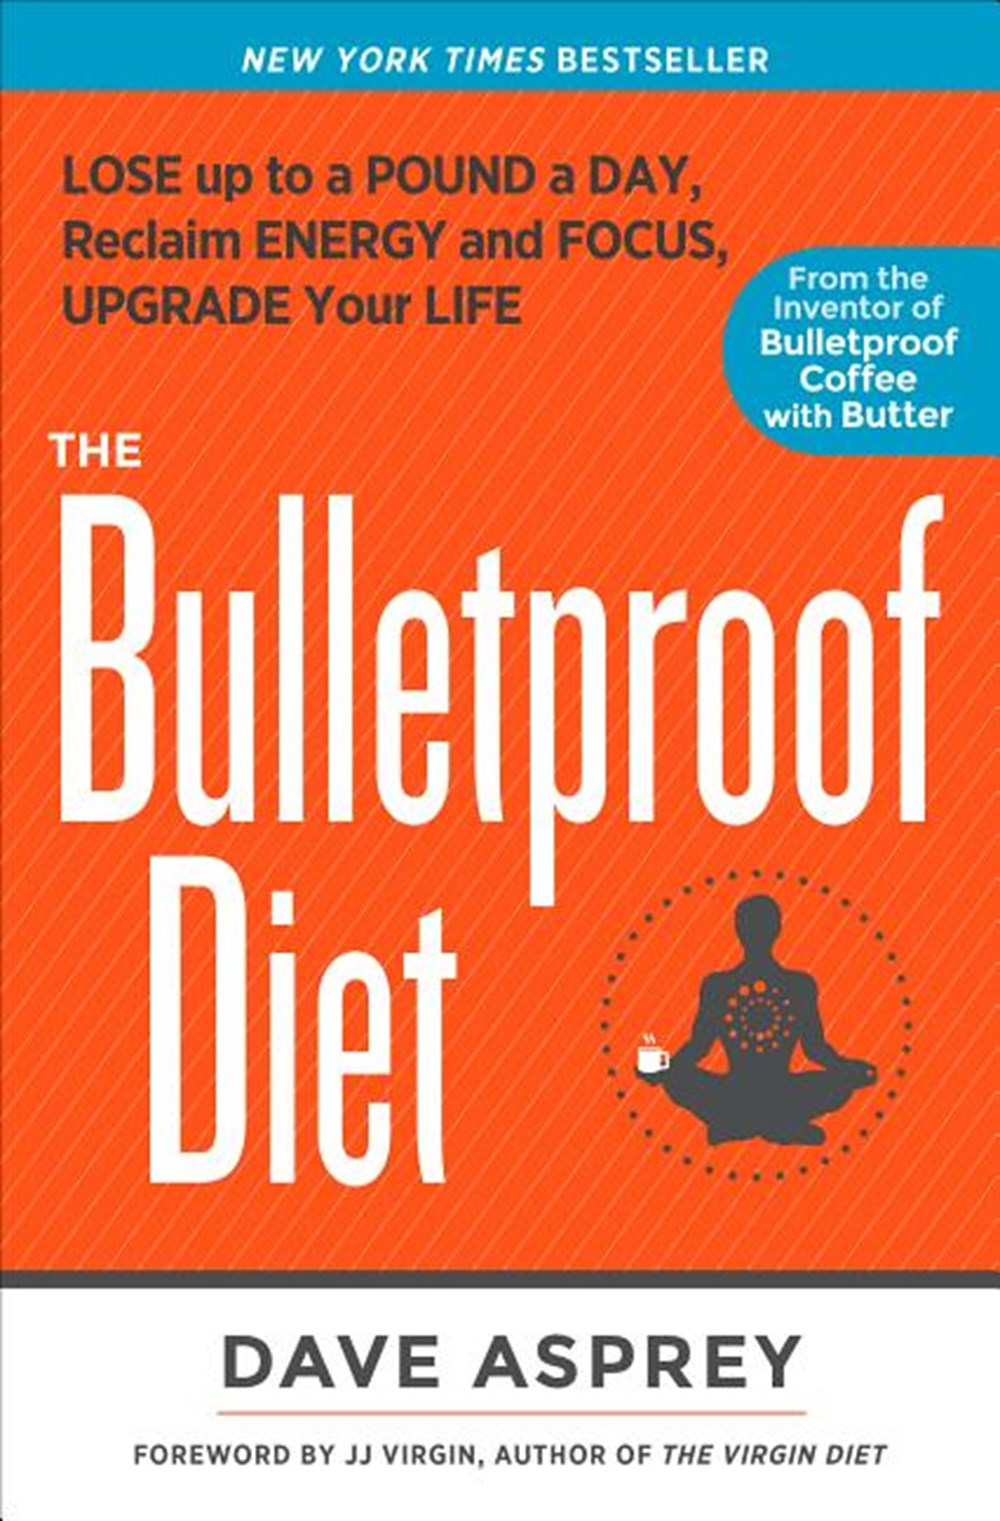 Bulletproof Diet Lose Up to a Pound a Day, Reclaim Energy and Focus, Upgrade Your Life